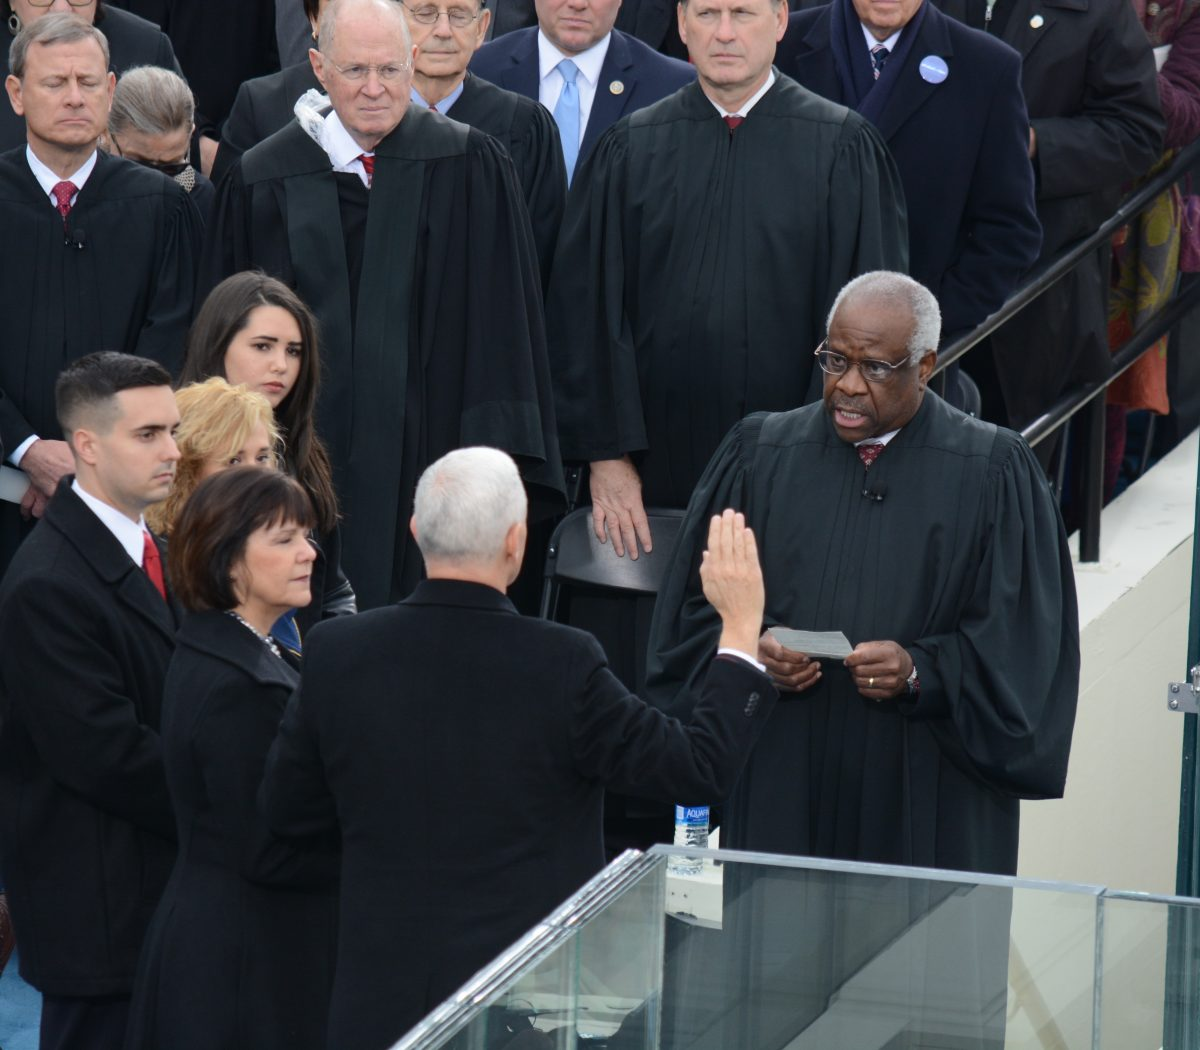 Supreme Court Justice Clarence Thomas administers the oath of office Administered to Vice President Michael R. Pence at the 58th Presidential Inaugural on January 20, 2017. /Photo by Roy Lewis